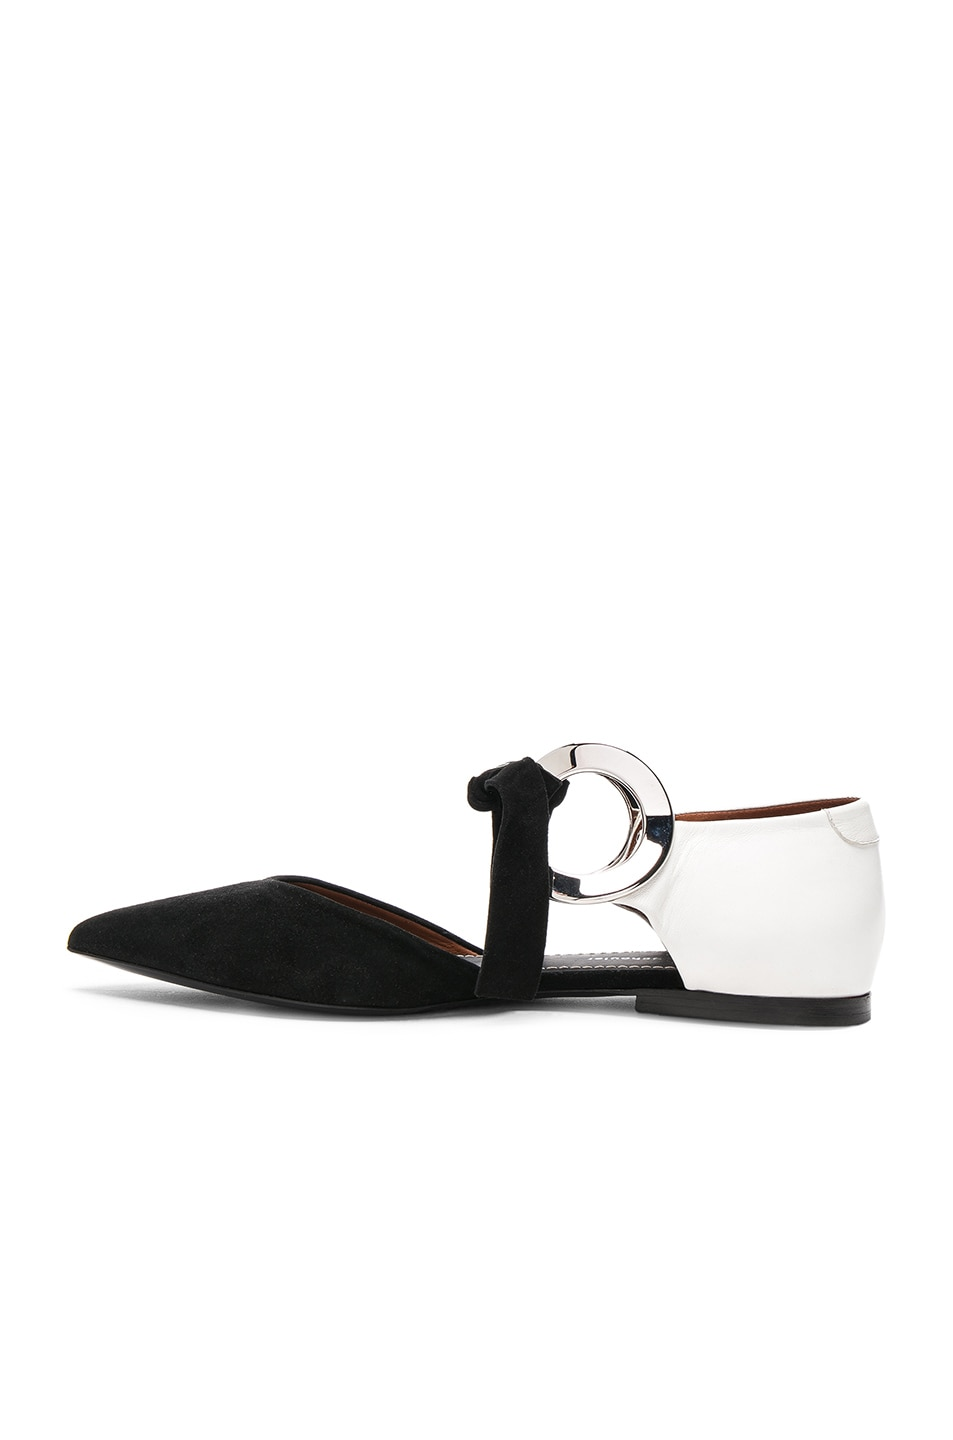 Image 5 of Proenza Schouler Suede Ankle Tie Flats in Black & White